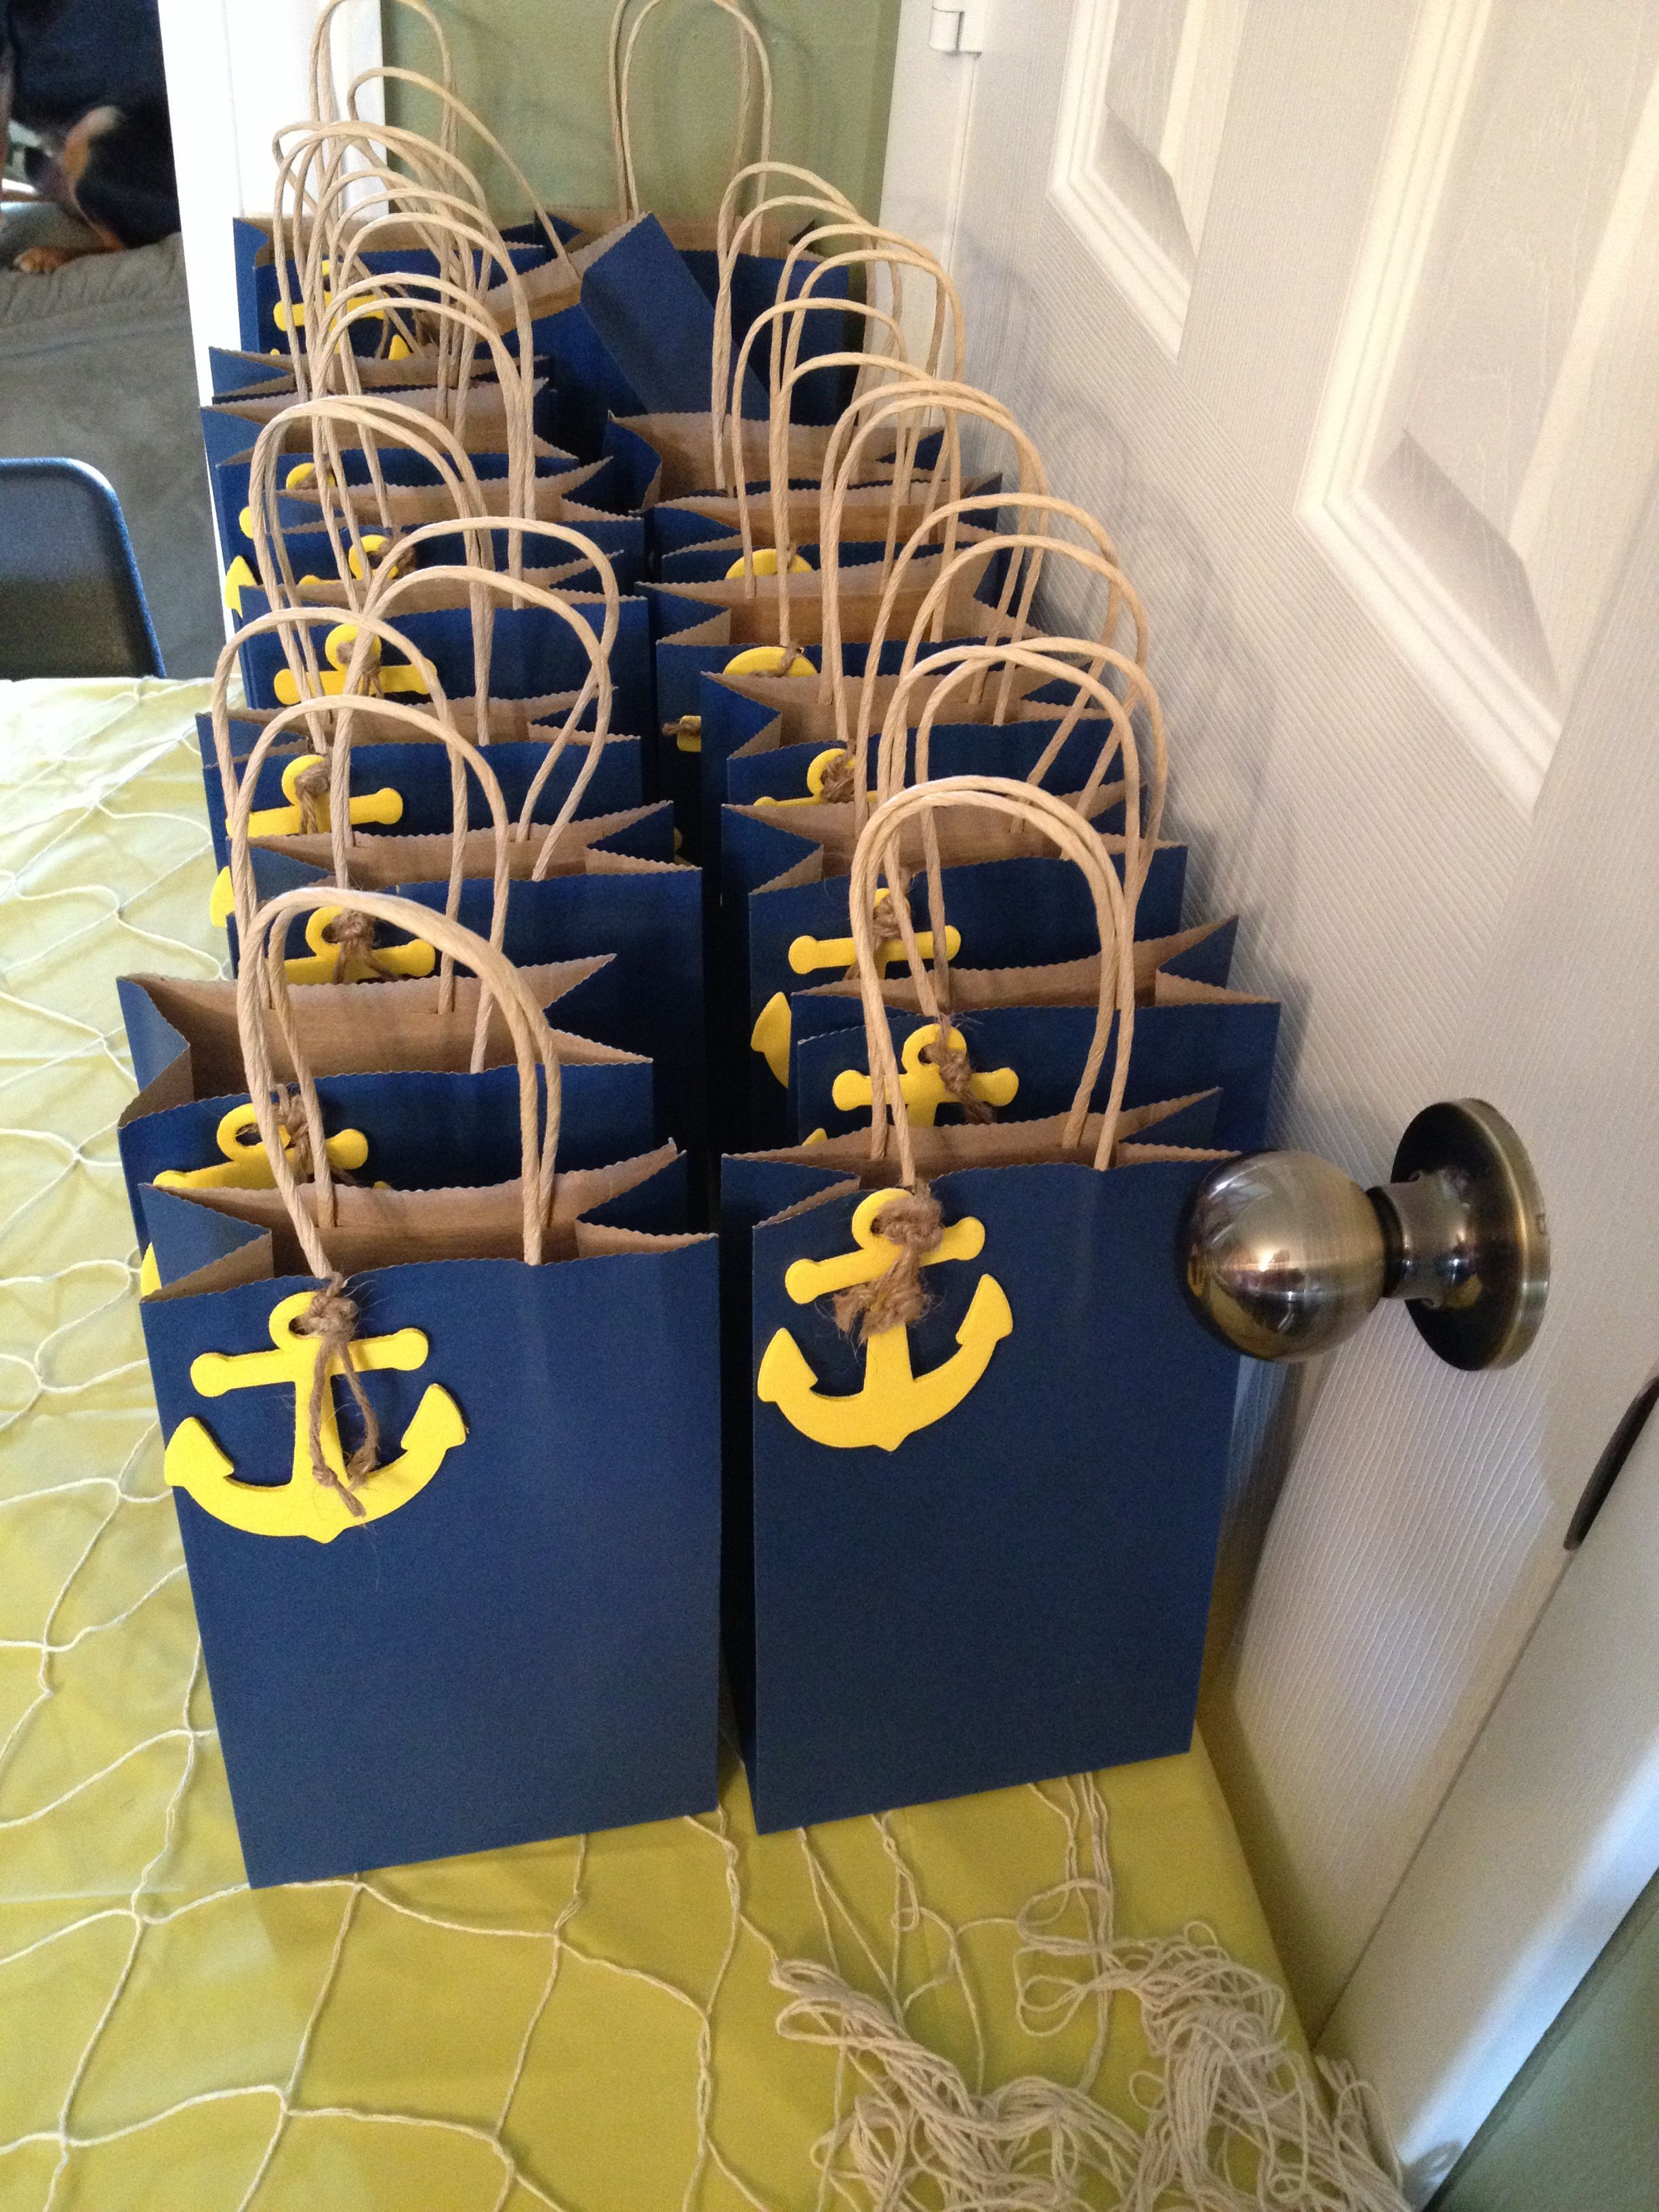 Found these wooden anchors & twine at Michaels Craft Store.  Painted anchors yellow and tied twine like rope knot. Jake pirate colored goody bags. Found 3-pack bags at Dollar Tree store. The kids loaded up on Pirate Grub after the party and brought around to all the Treasure Map Game stations.